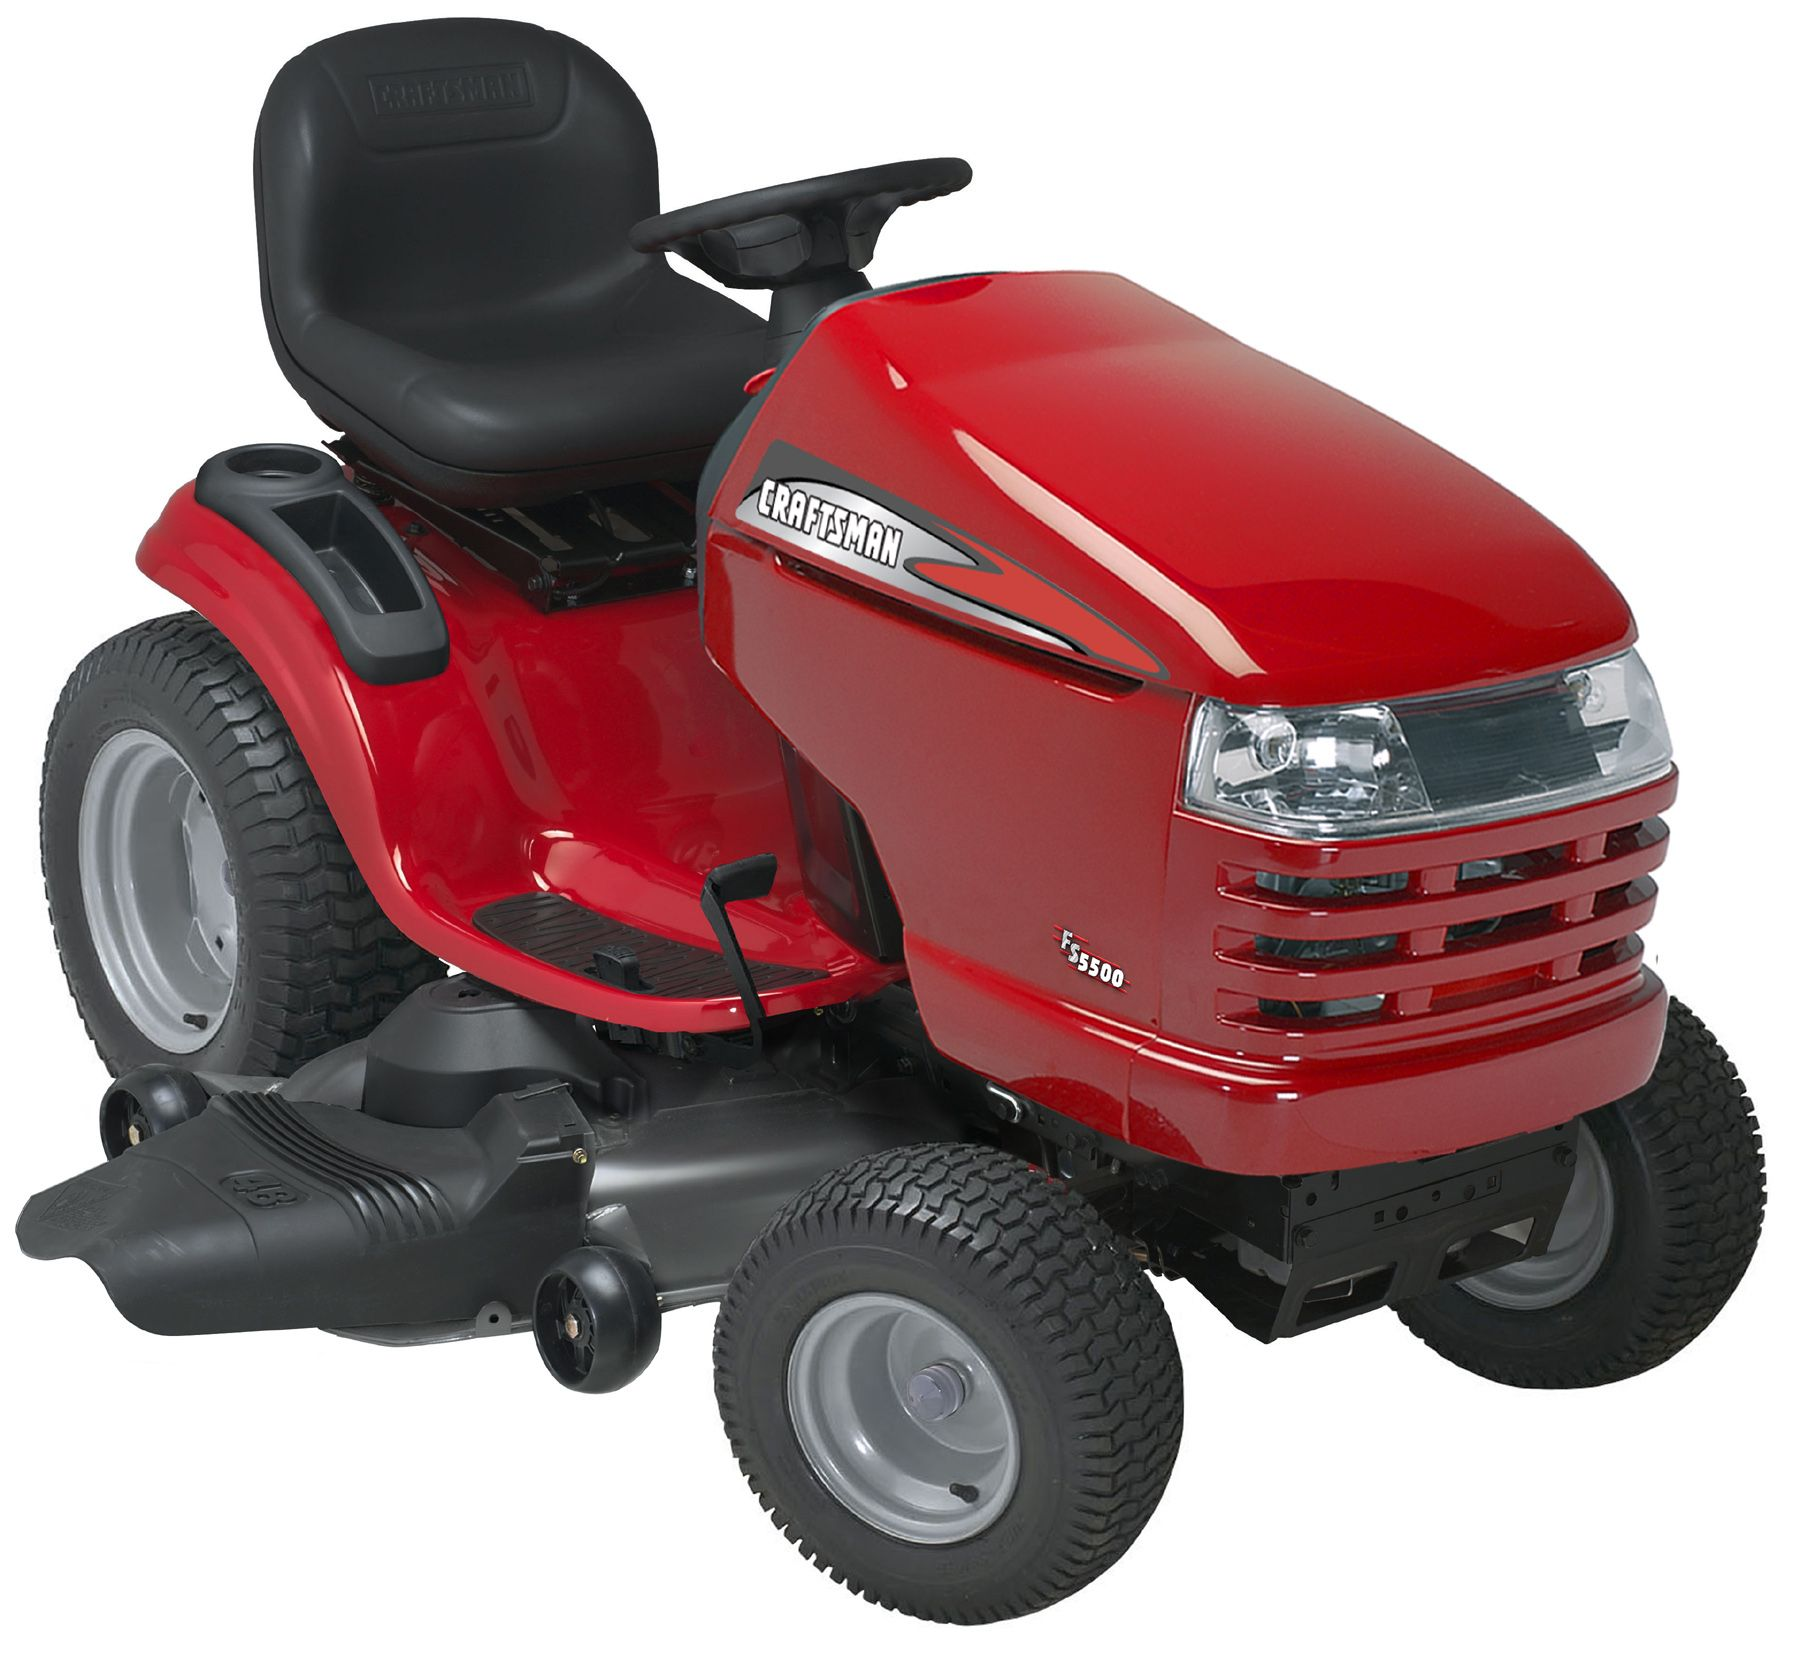 spin prod 210956701 wid 200 hei 250 craftsman tractor parts model 917276843 sears partsdirect at cita craftsman riding mower model 917 manual  [ 1800 x 1659 Pixel ]